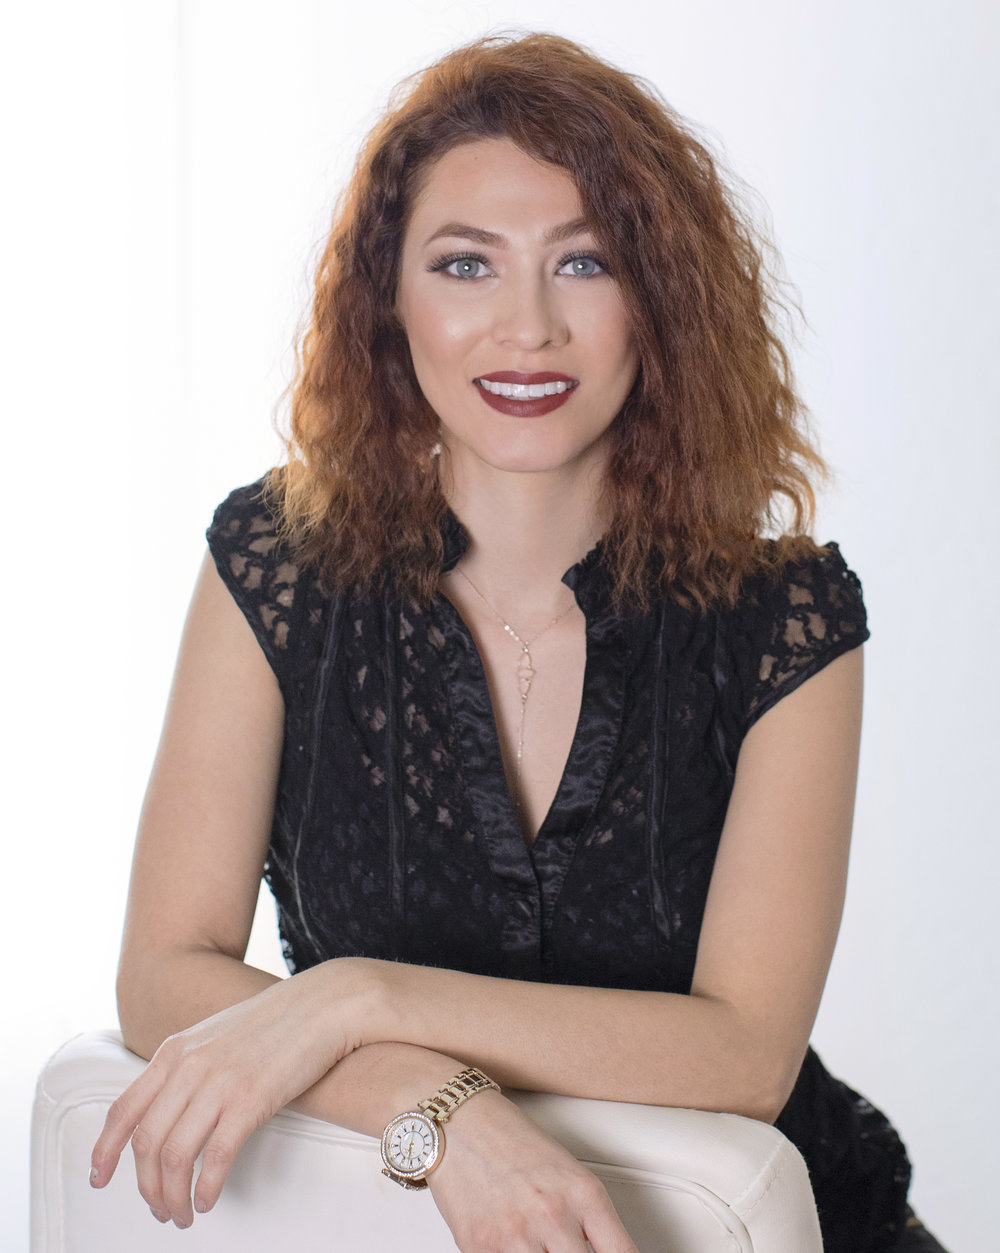 Meet Karina - Karina has been in the hair and makeup industry for nine years. She loves everything about the beauty industry, but what she enjoys the most is seeing her clients transformation. She has had the opportunity to work with Phoenix Fashion Week during the major annual event in Scottsdale AZ.